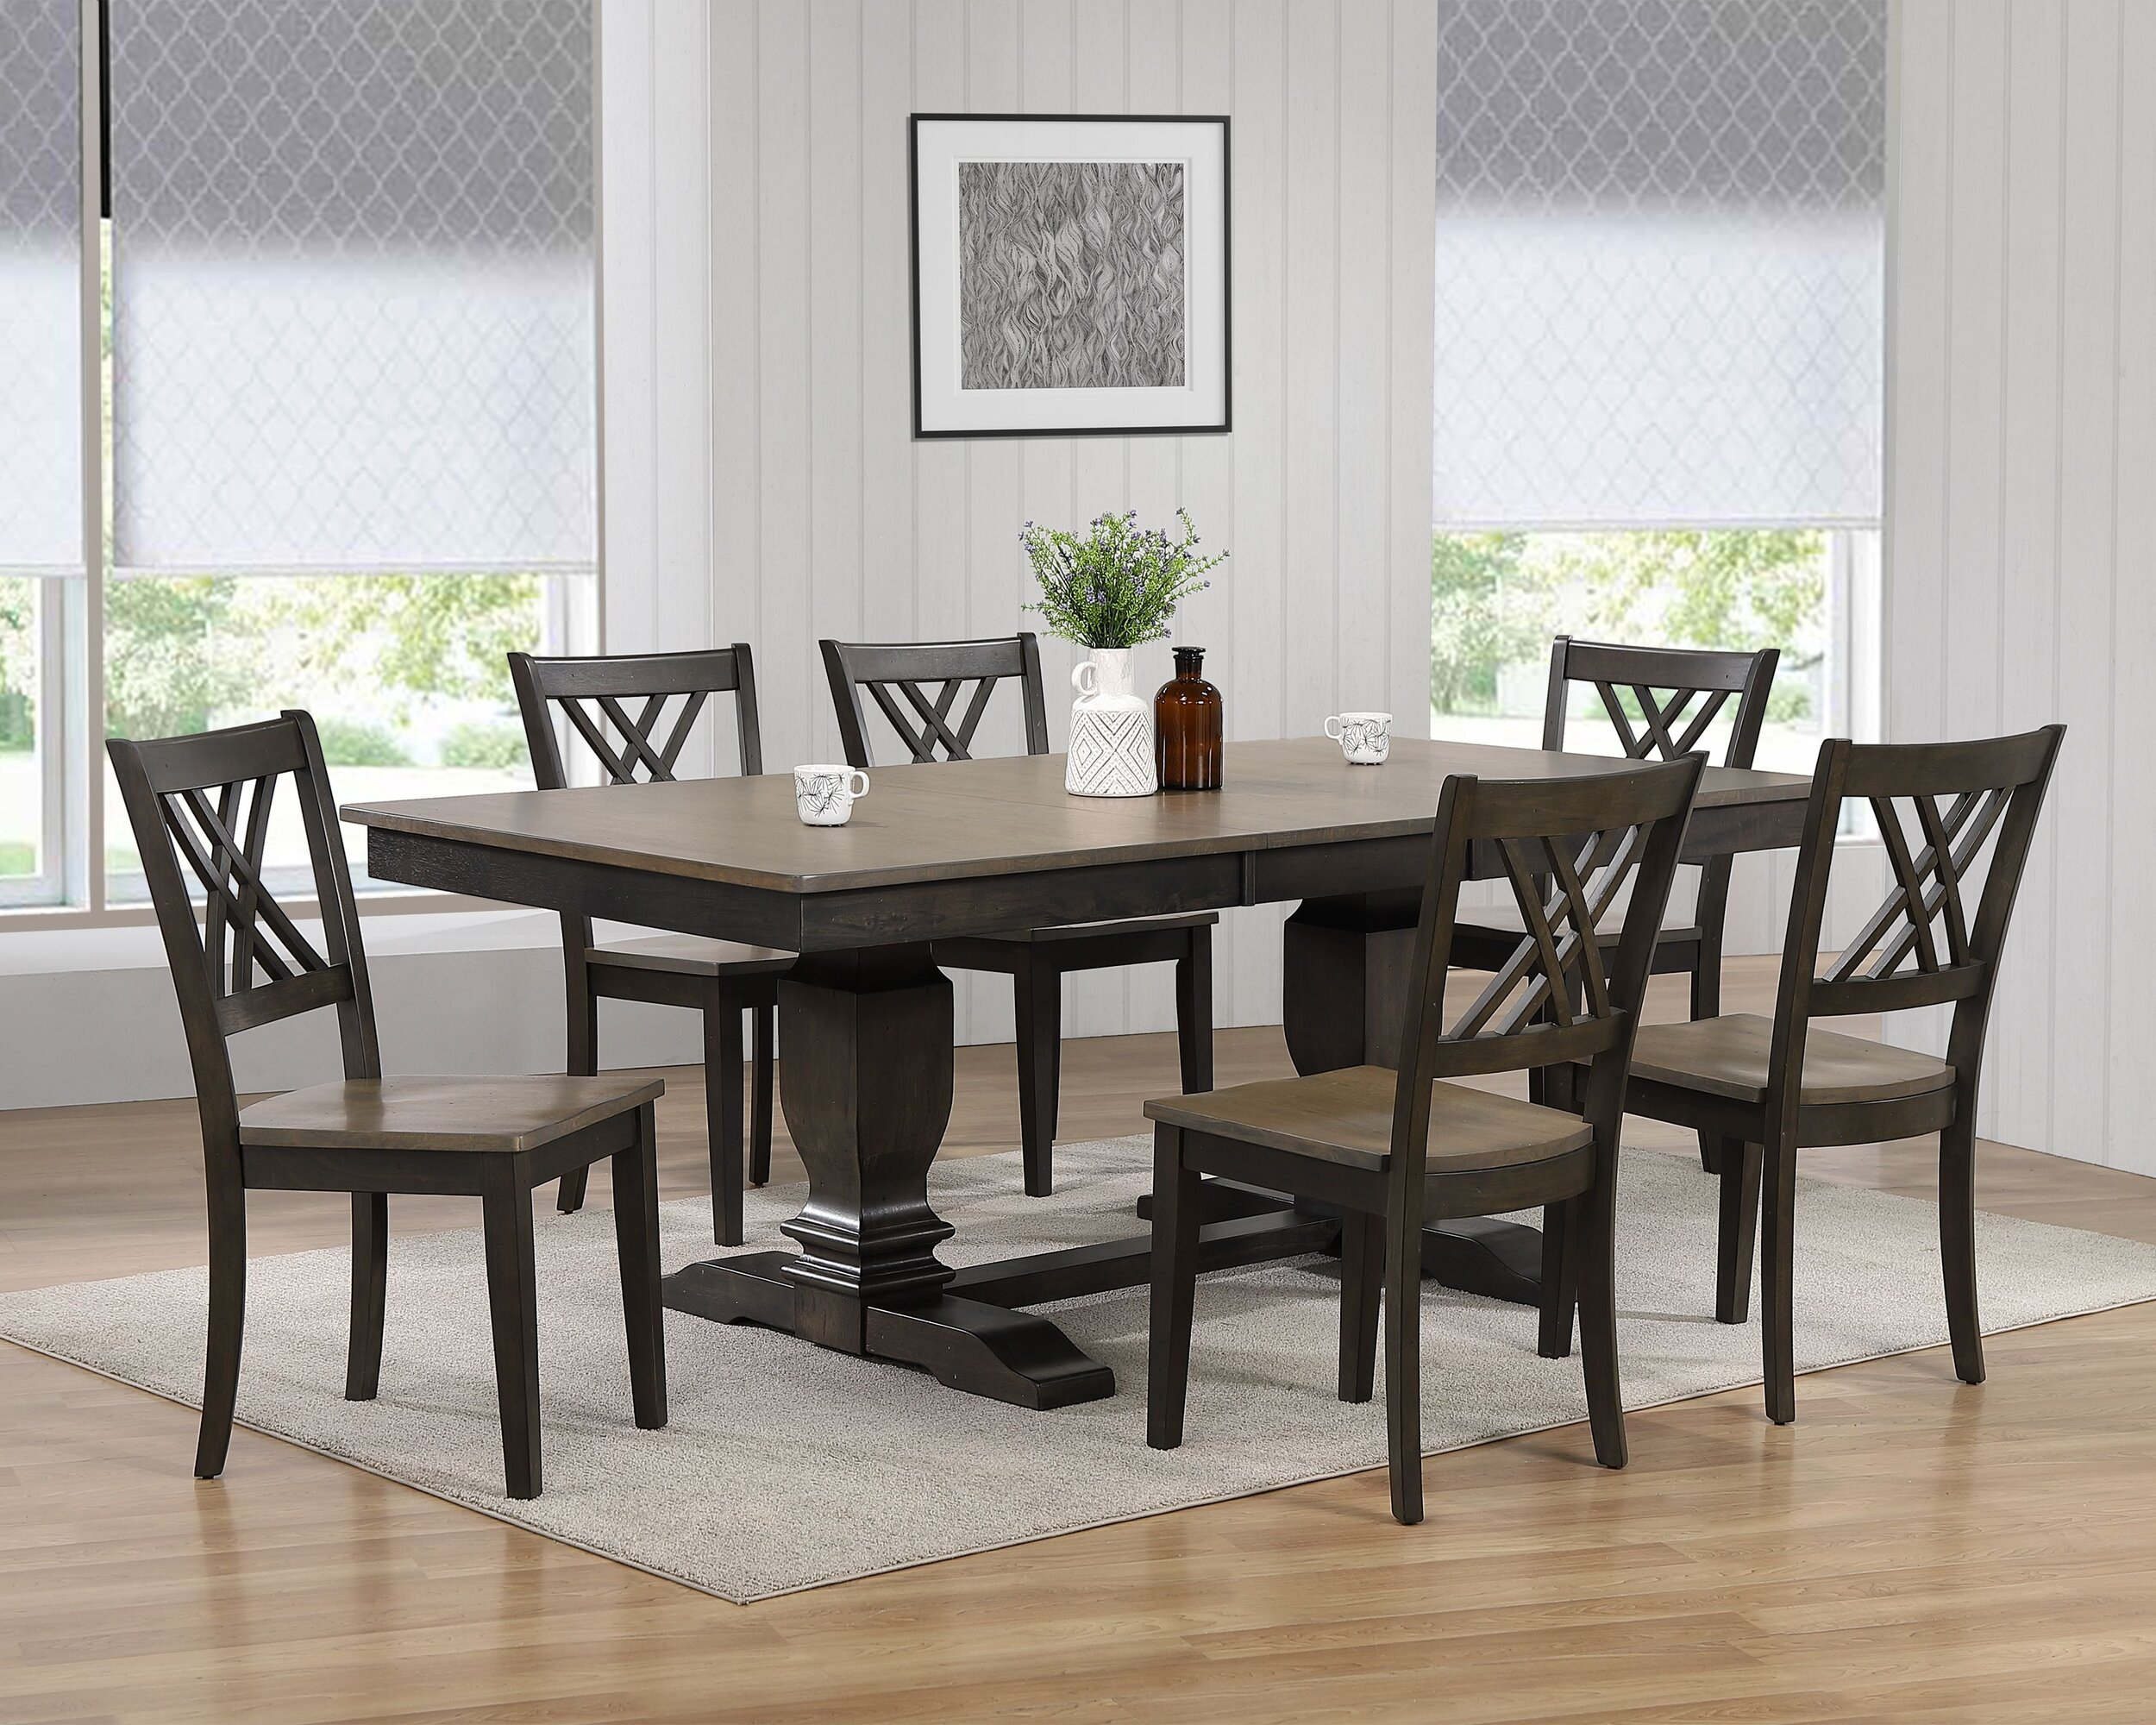 "42""x64""x82"" Double Pedestal Transitional Antiqued Grey Stone Black Stone Double X-Back 7-Piece Dining Set"